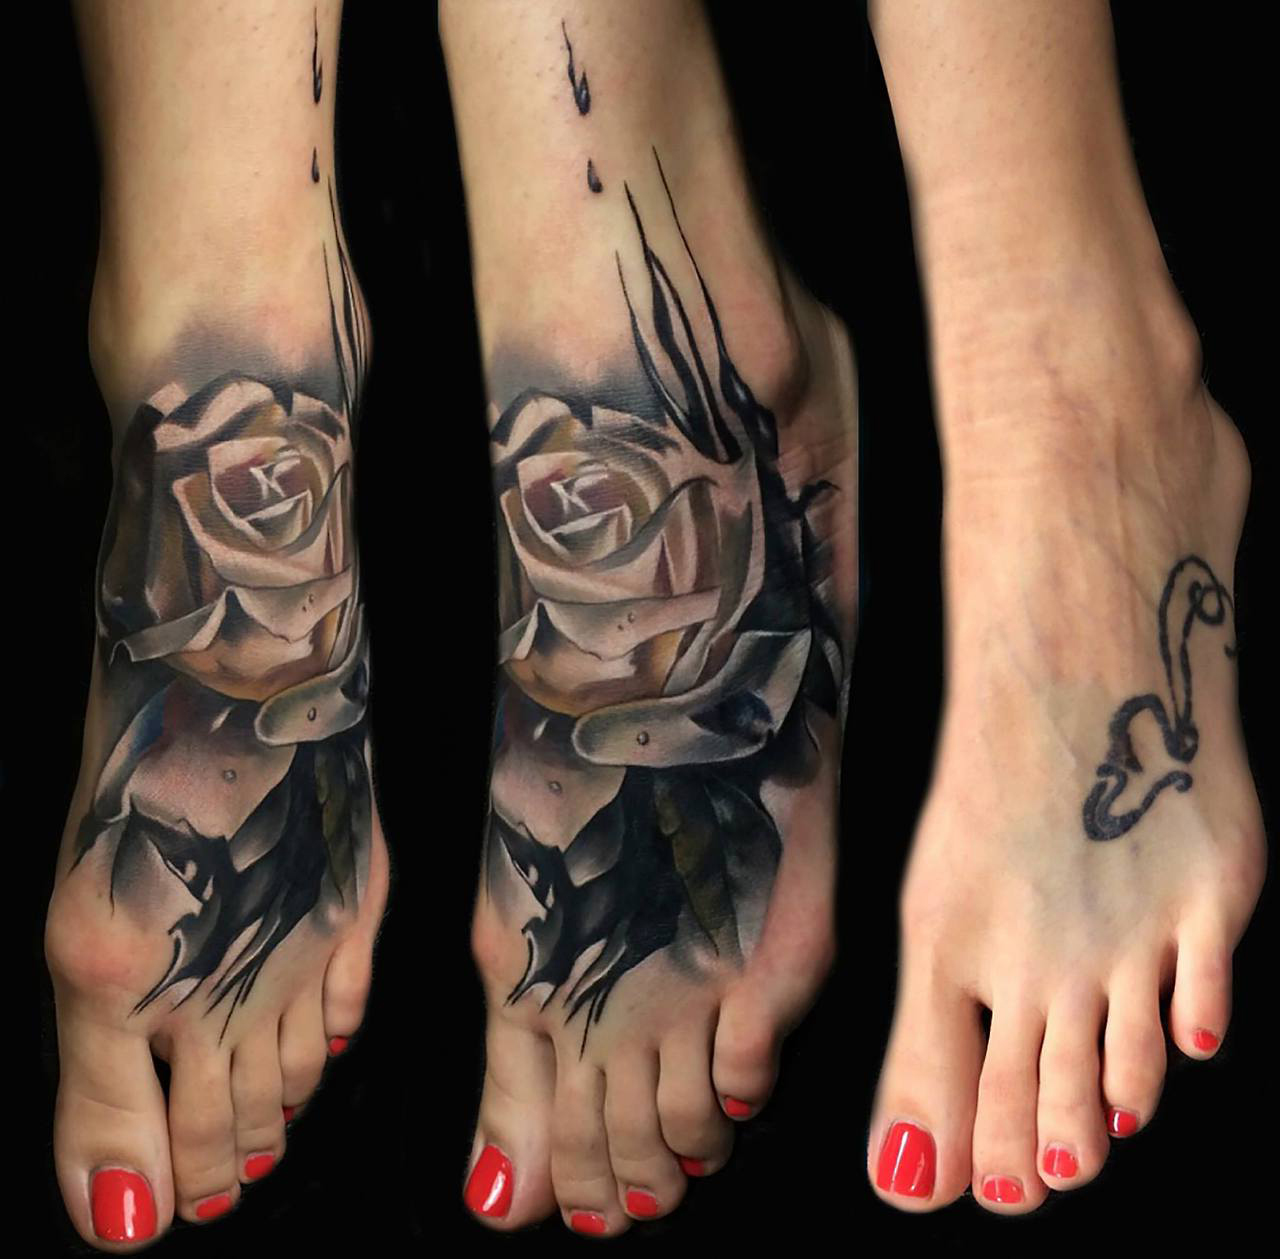 Foot rose cover up tattoo design best tattoo ideas gallery for How to cover tattoos